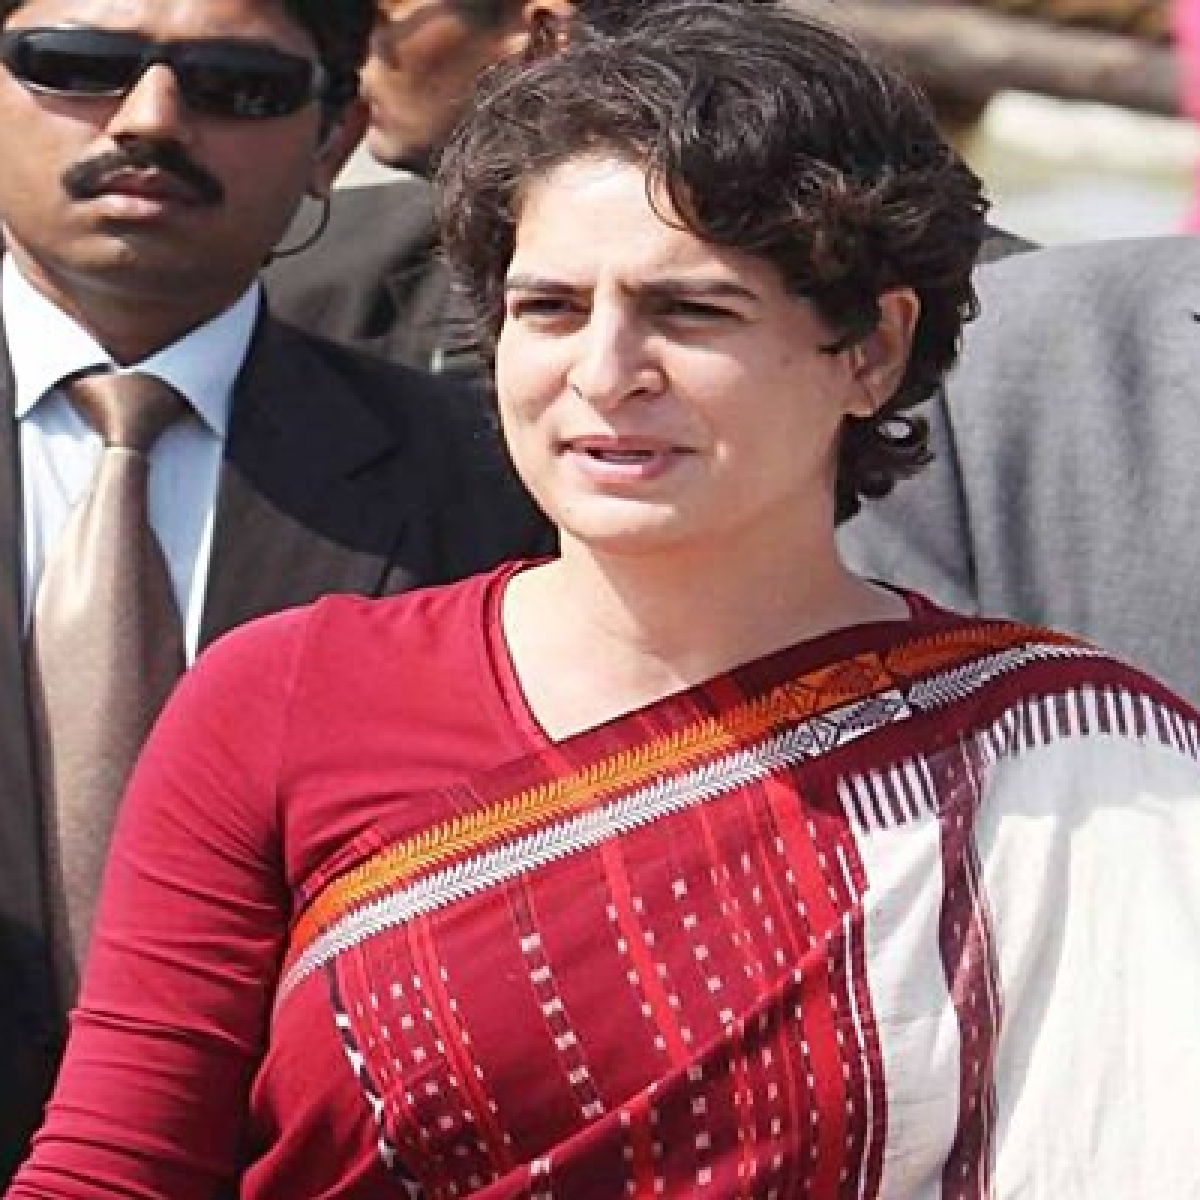 Middlemen benefited due to bankruptcy of your policy: Priyanka Gandhi Vadra to Nirmala Sithraman on onion prices